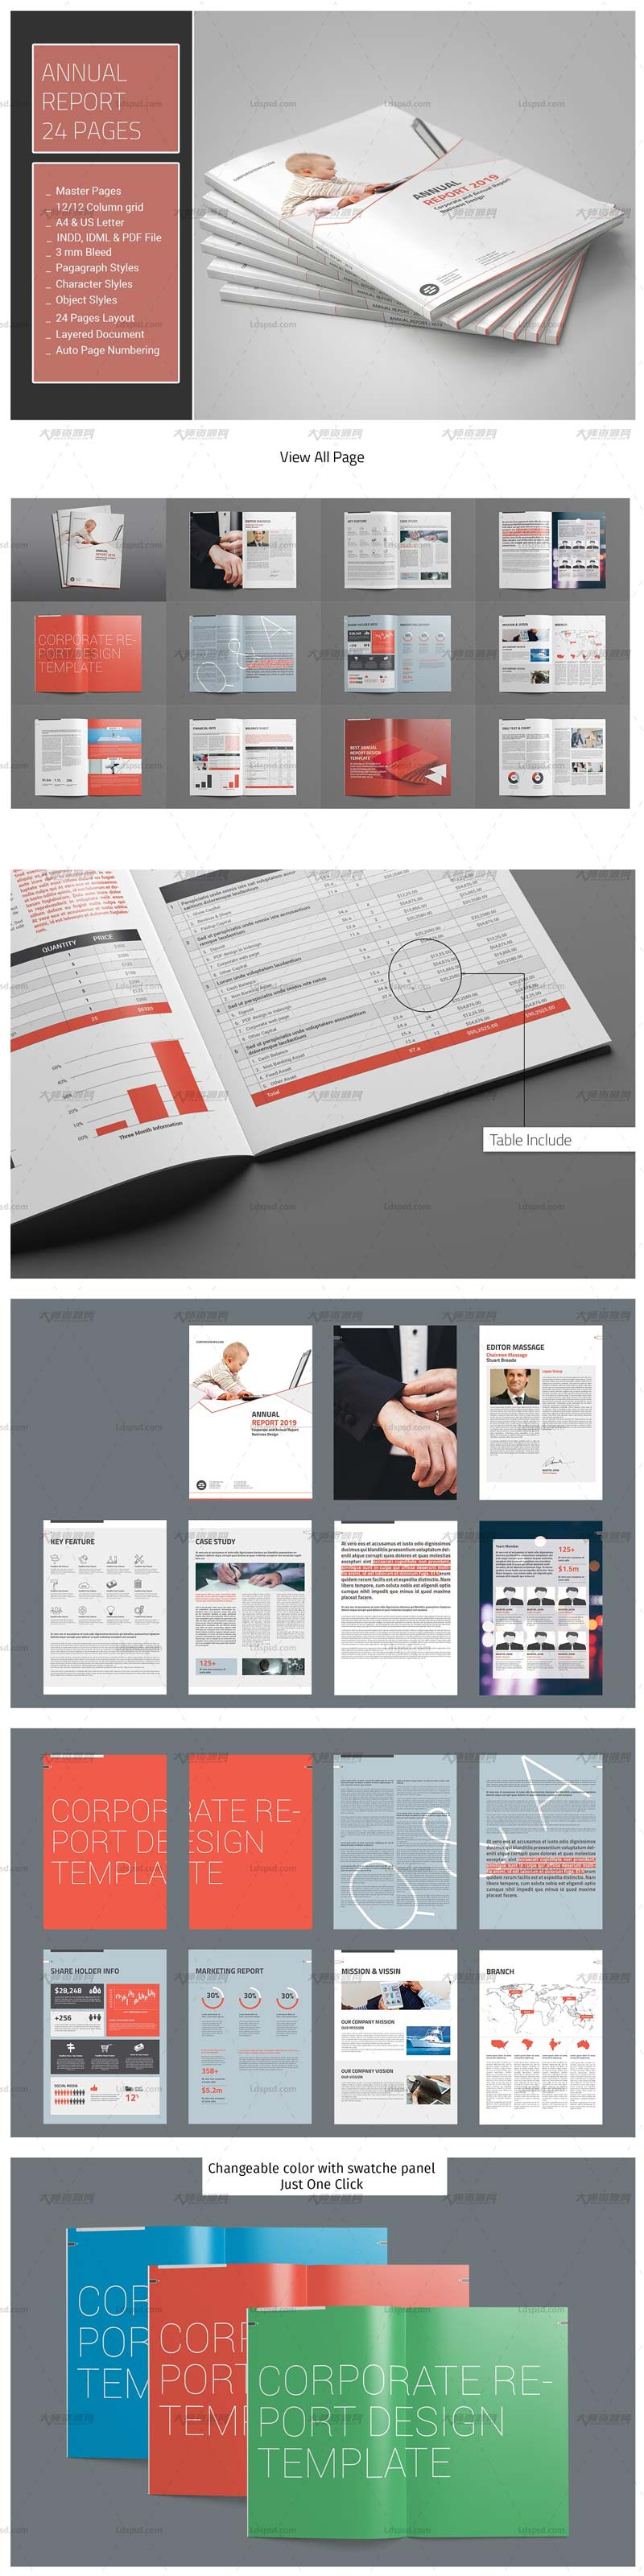 Annual Report 24 Pages.jpg